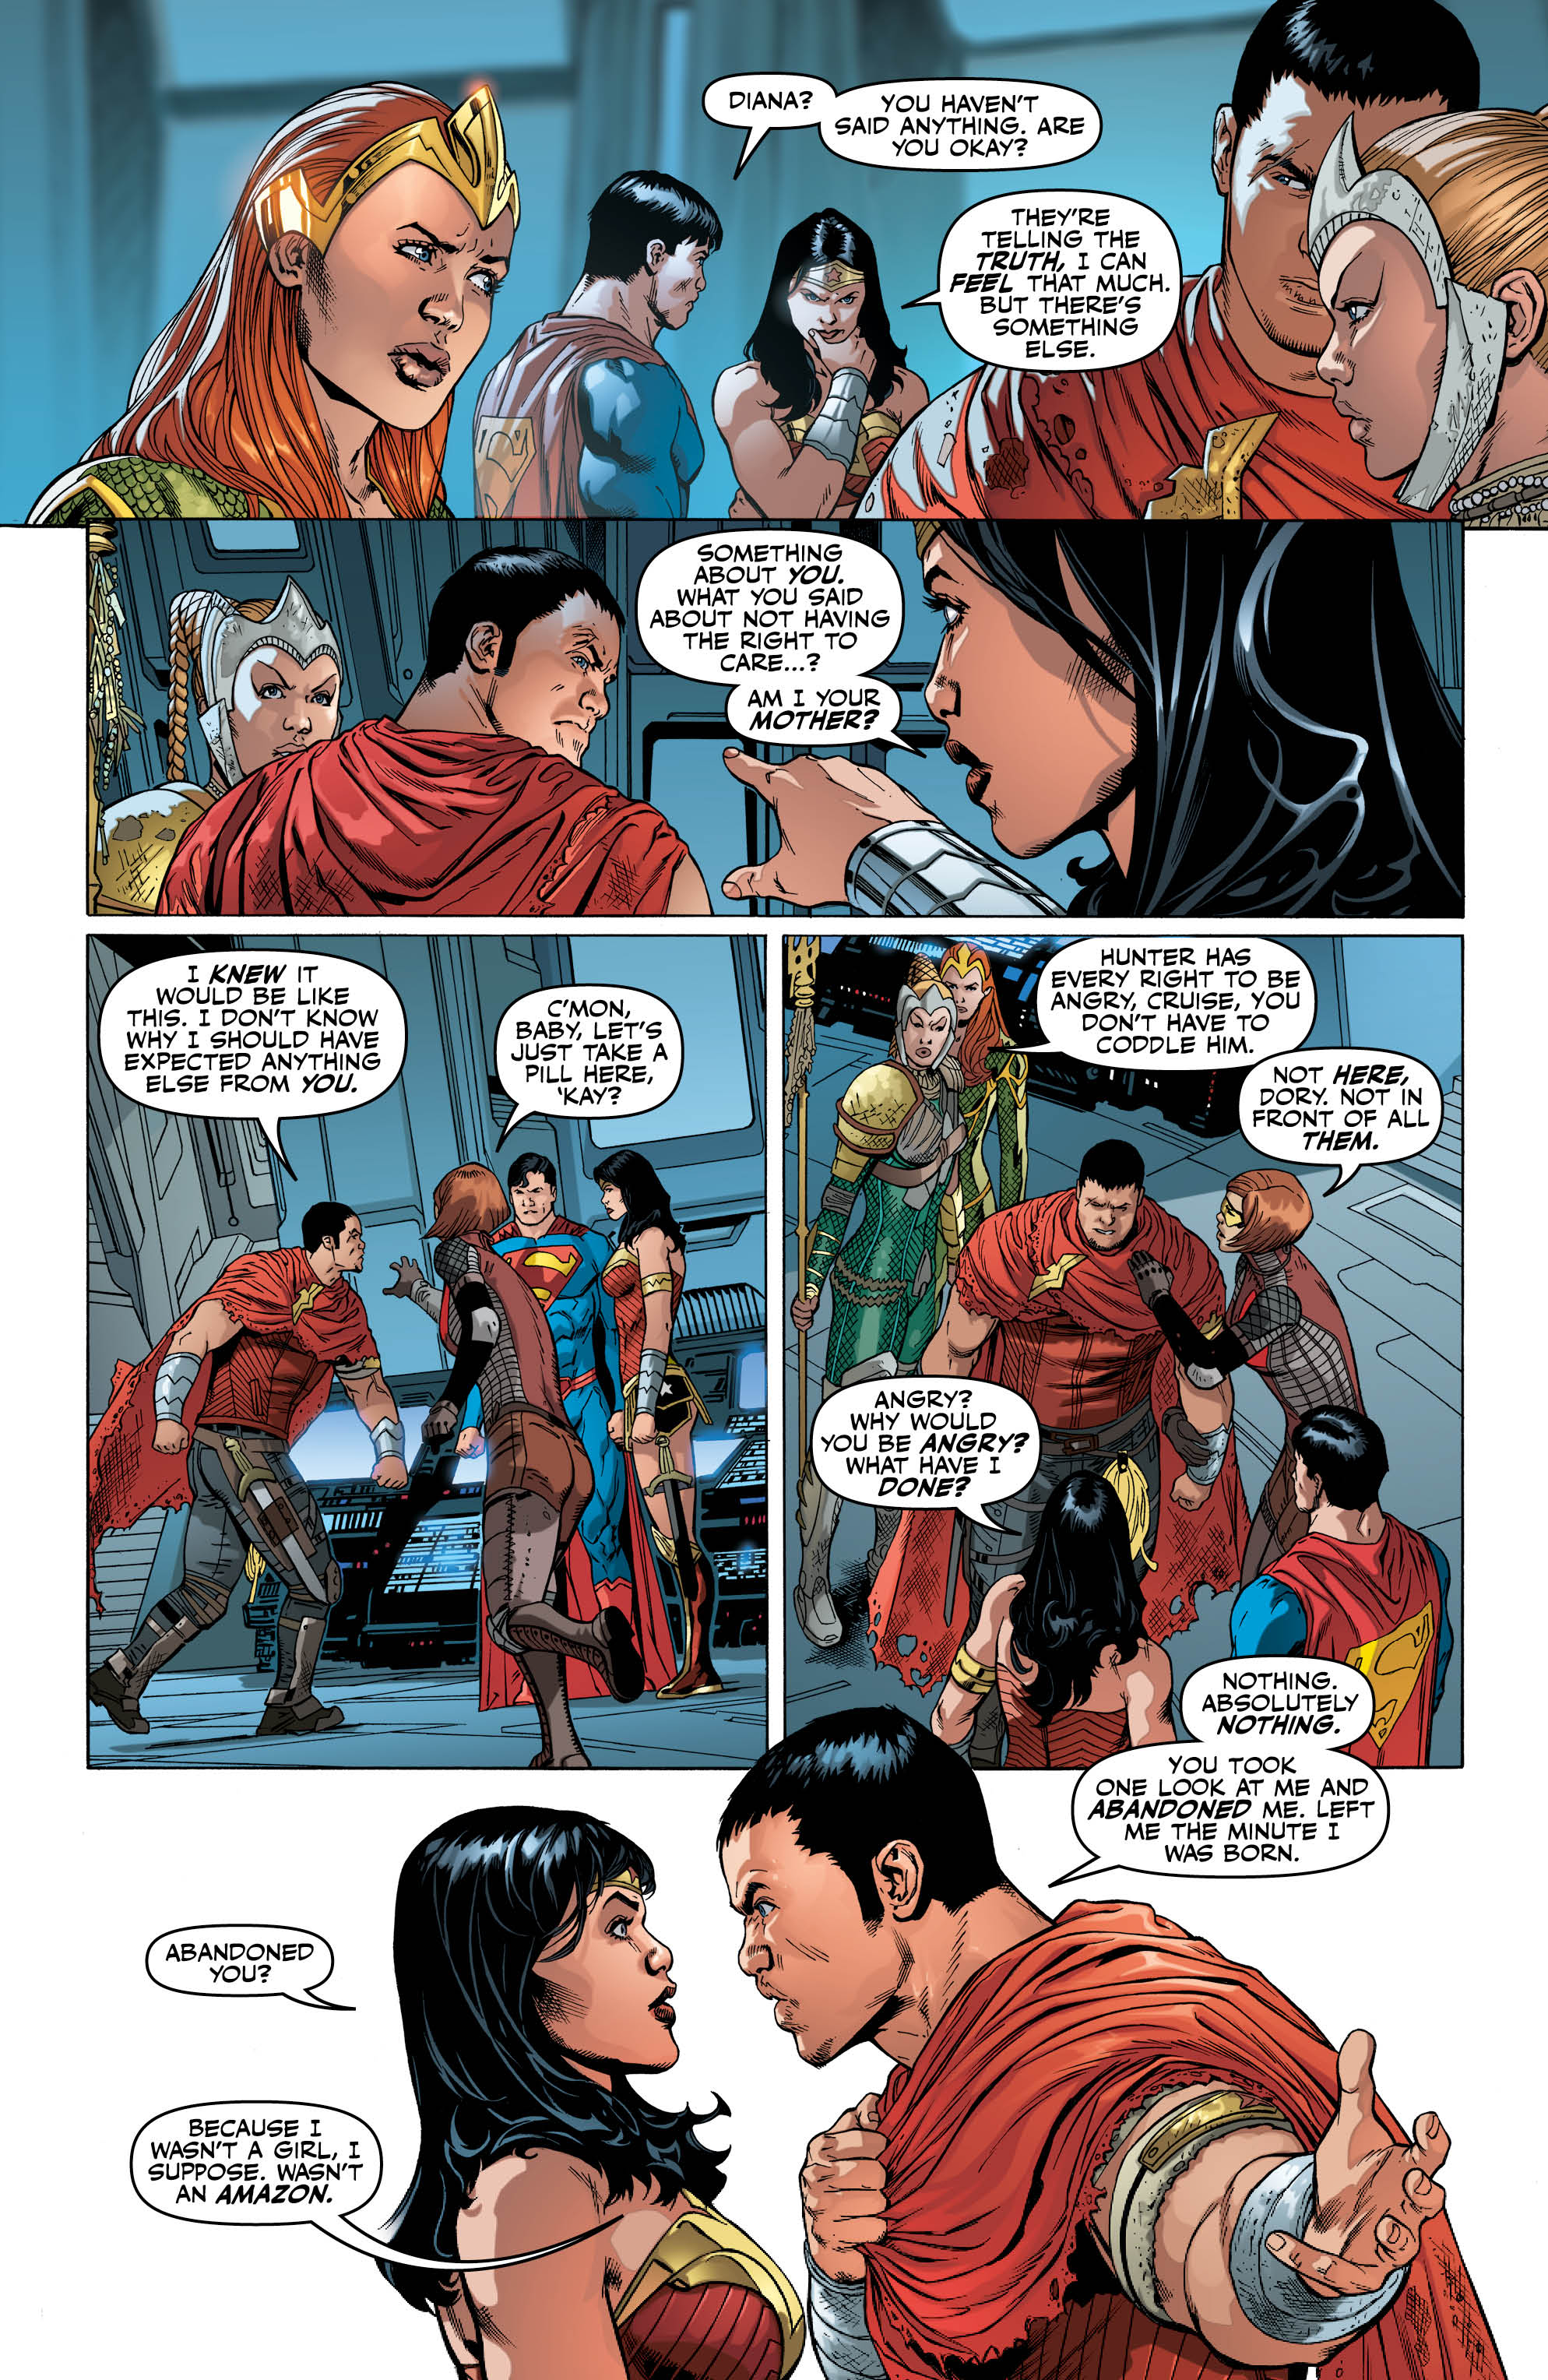 Superman  Wonder Woman Appreciation - Page 819-6502